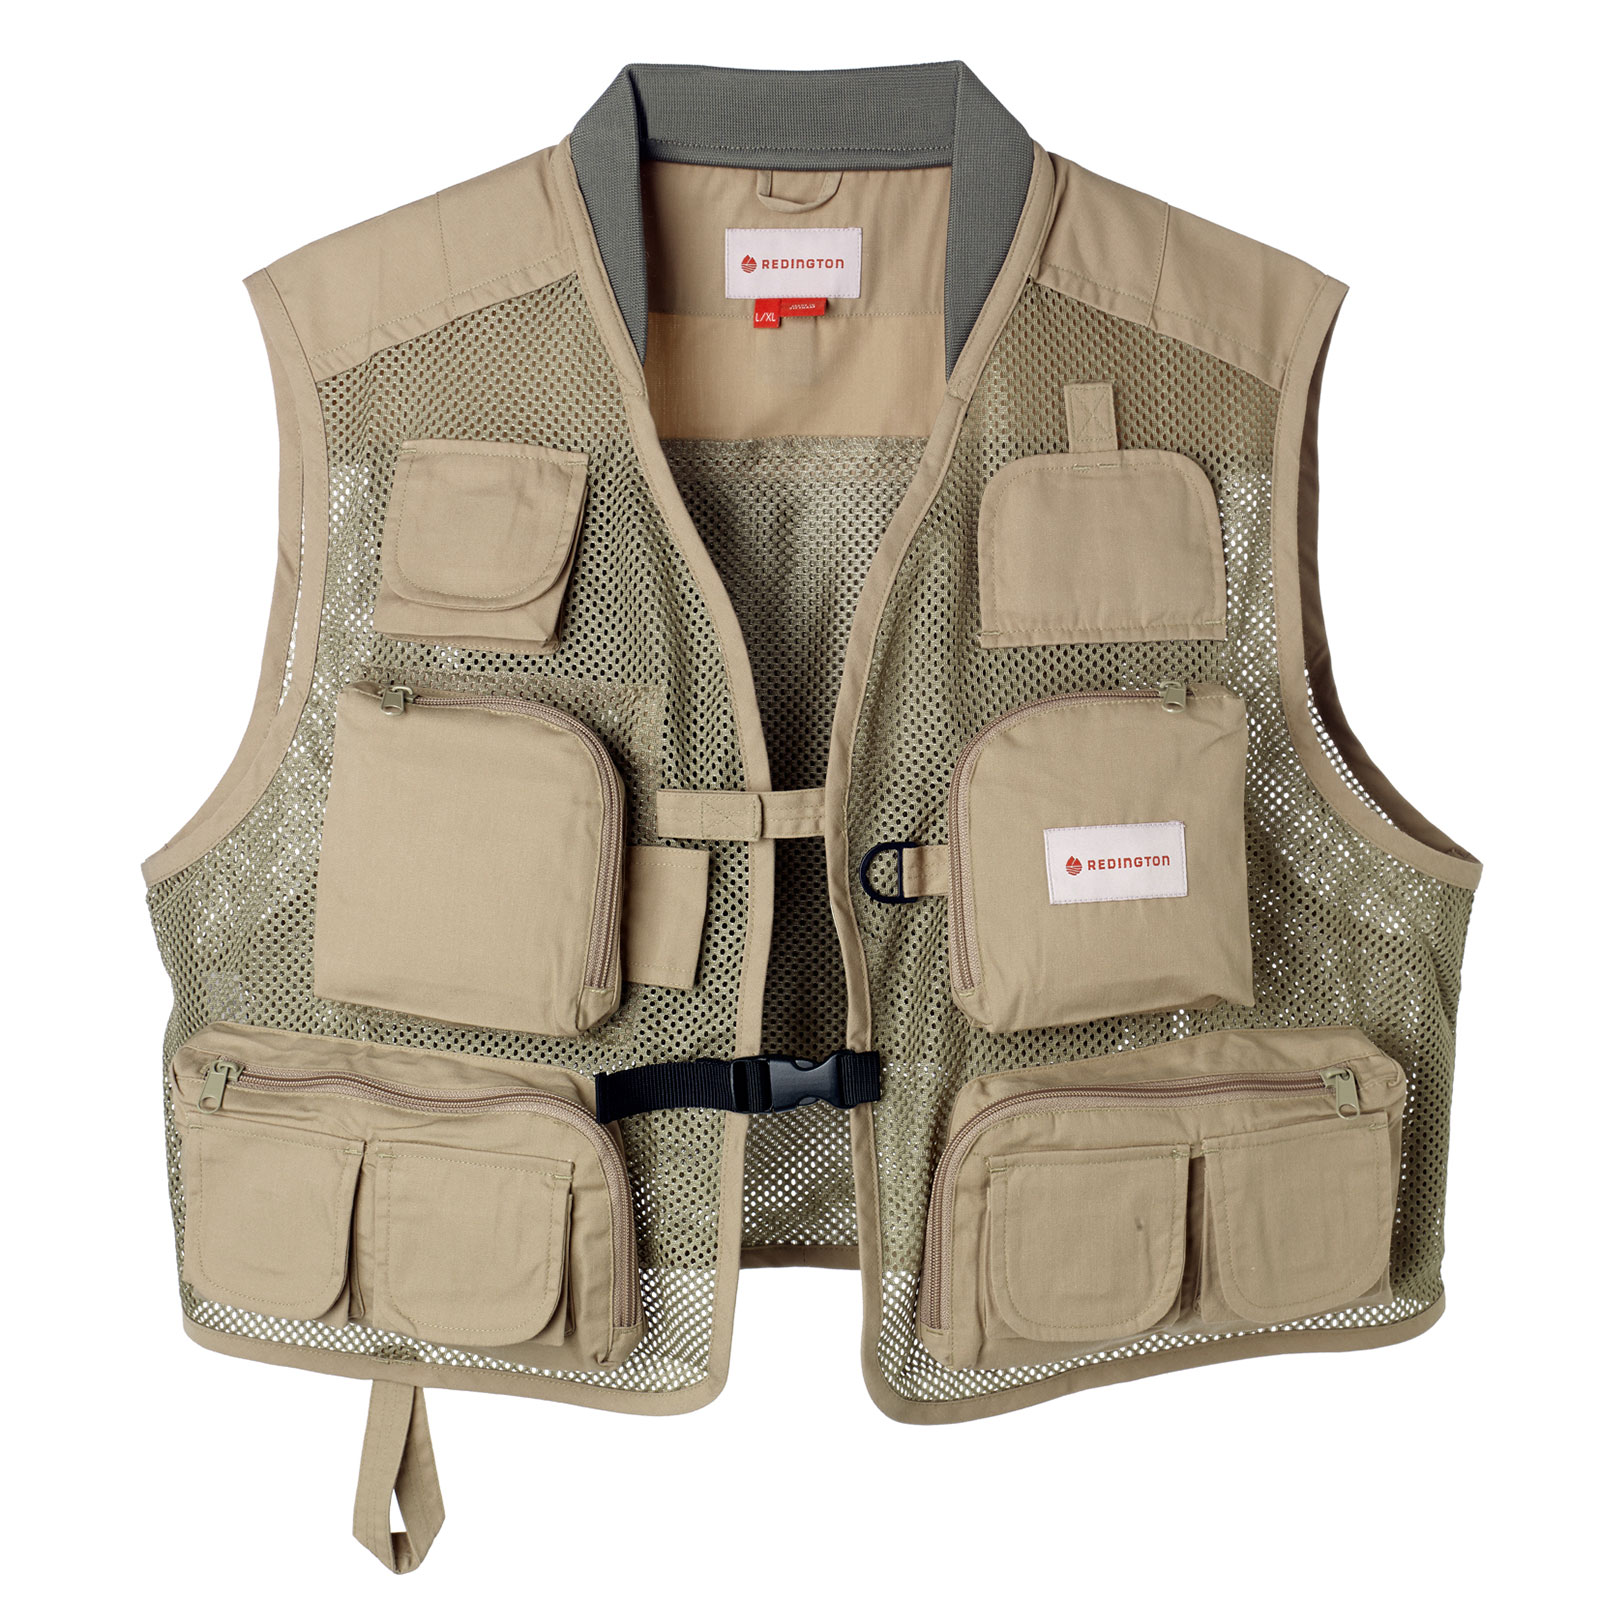 redington clark fork mesh fly fishing vest size small